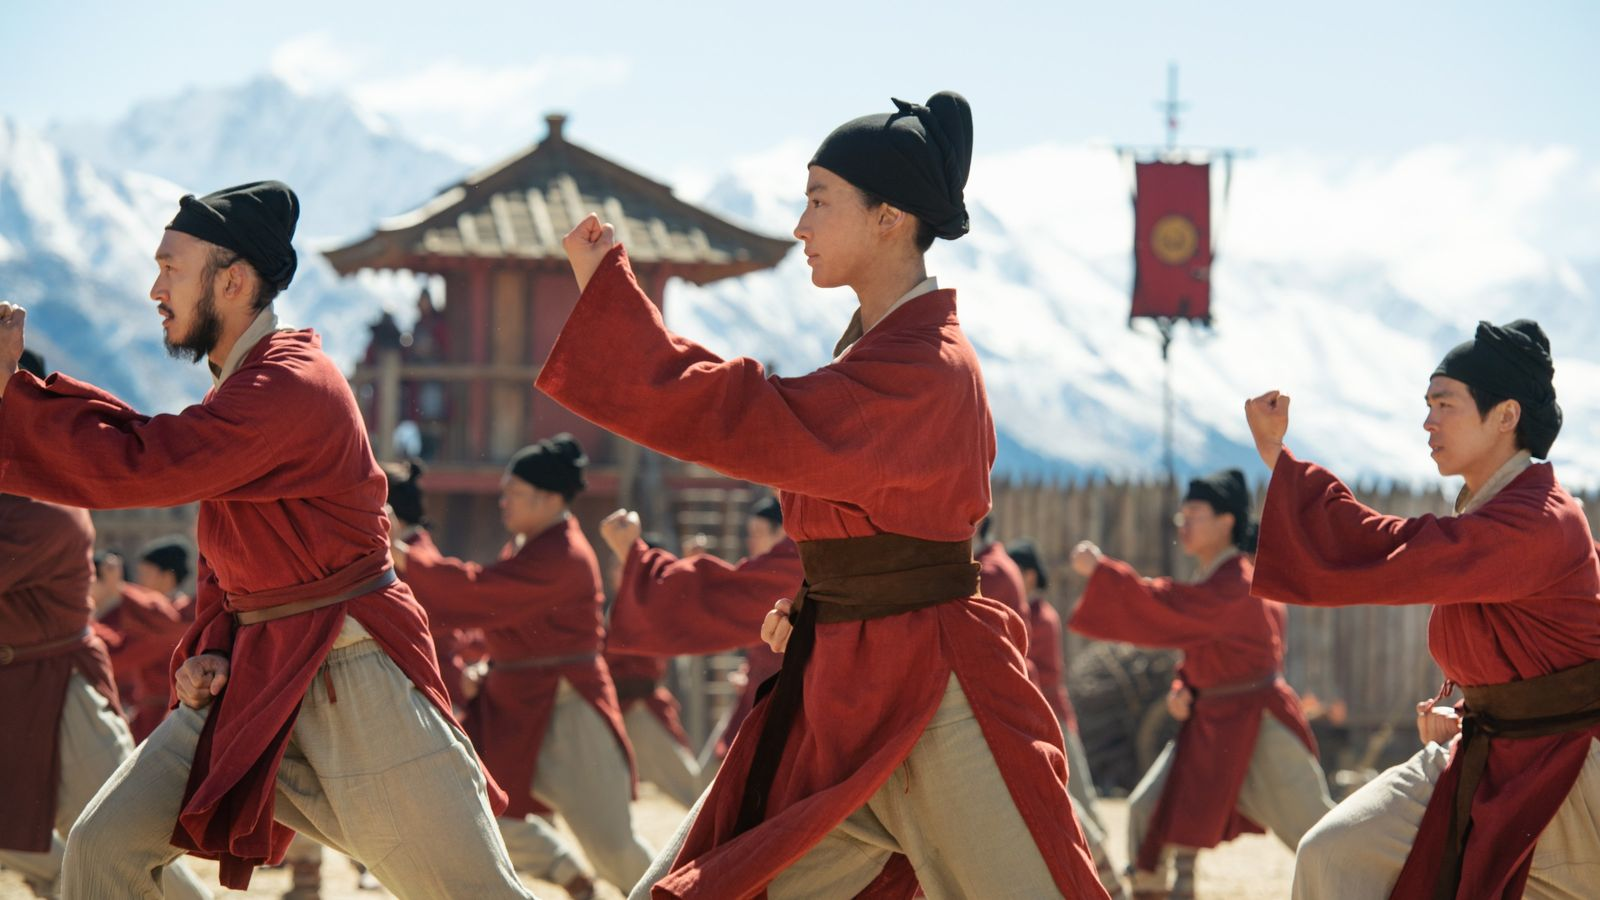 From ancient history to Hollywood: A brief history of Chinese martial arts